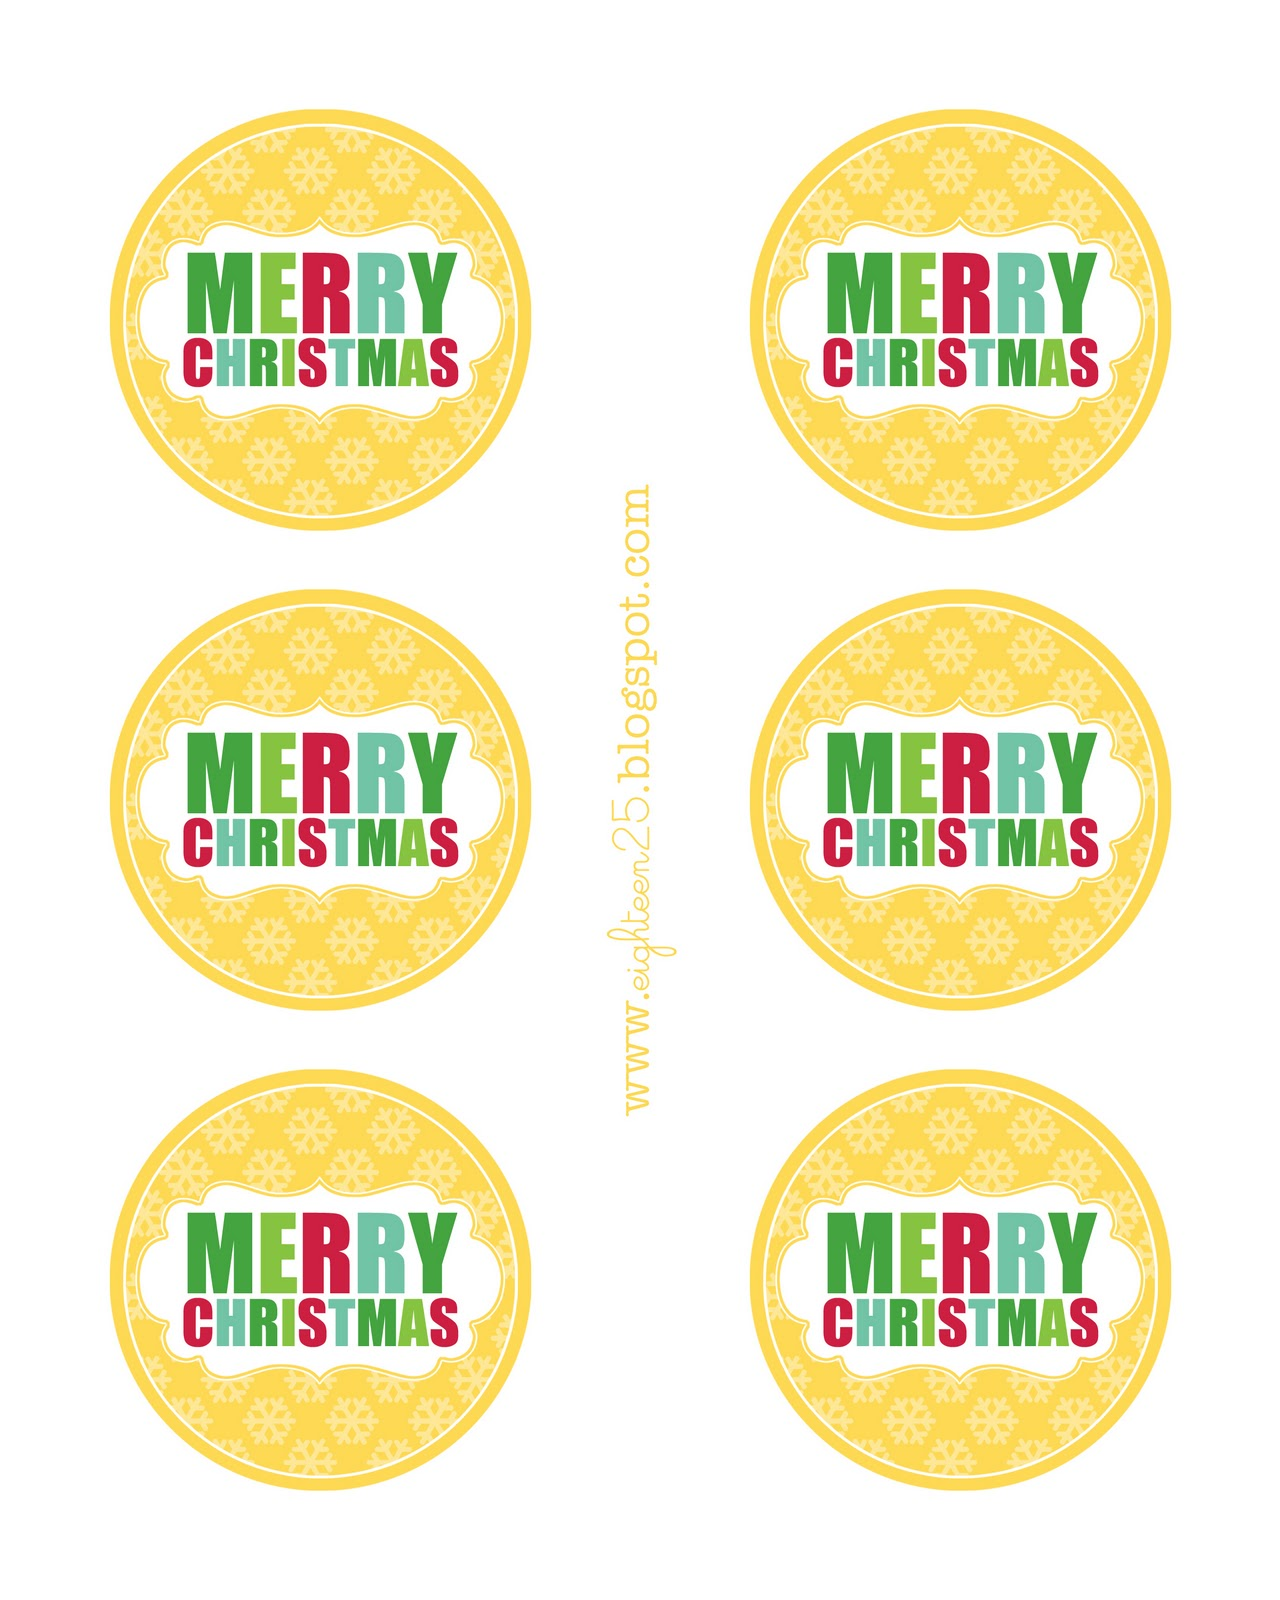 Merry Christmas Labels Printable: Baking Day Recipes And A Christmas Tag